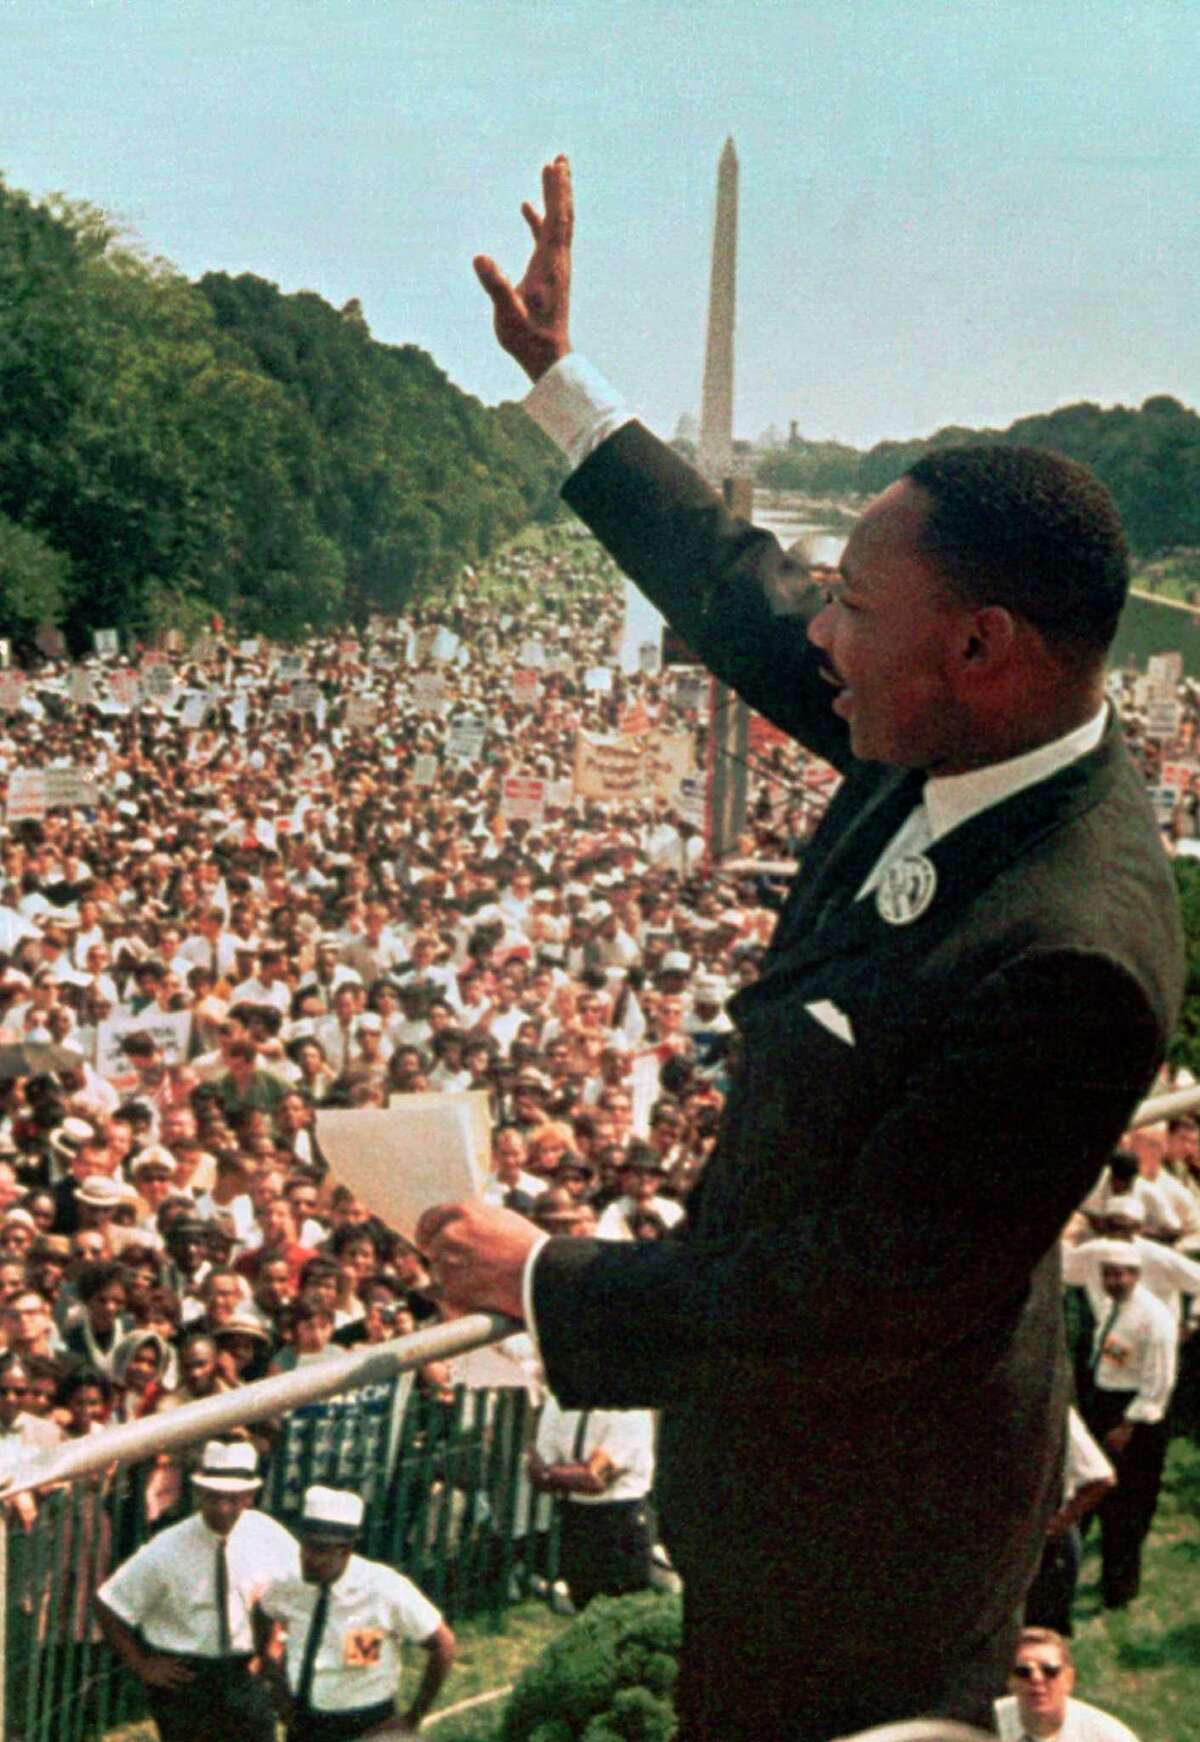 """Martin Luther King Jr. acknowledges the crowd at the Lincoln Memorial for his """"I Have a Dream"""" speech in 1963, presaging the Civil Rights Act and Voting Rights Act."""